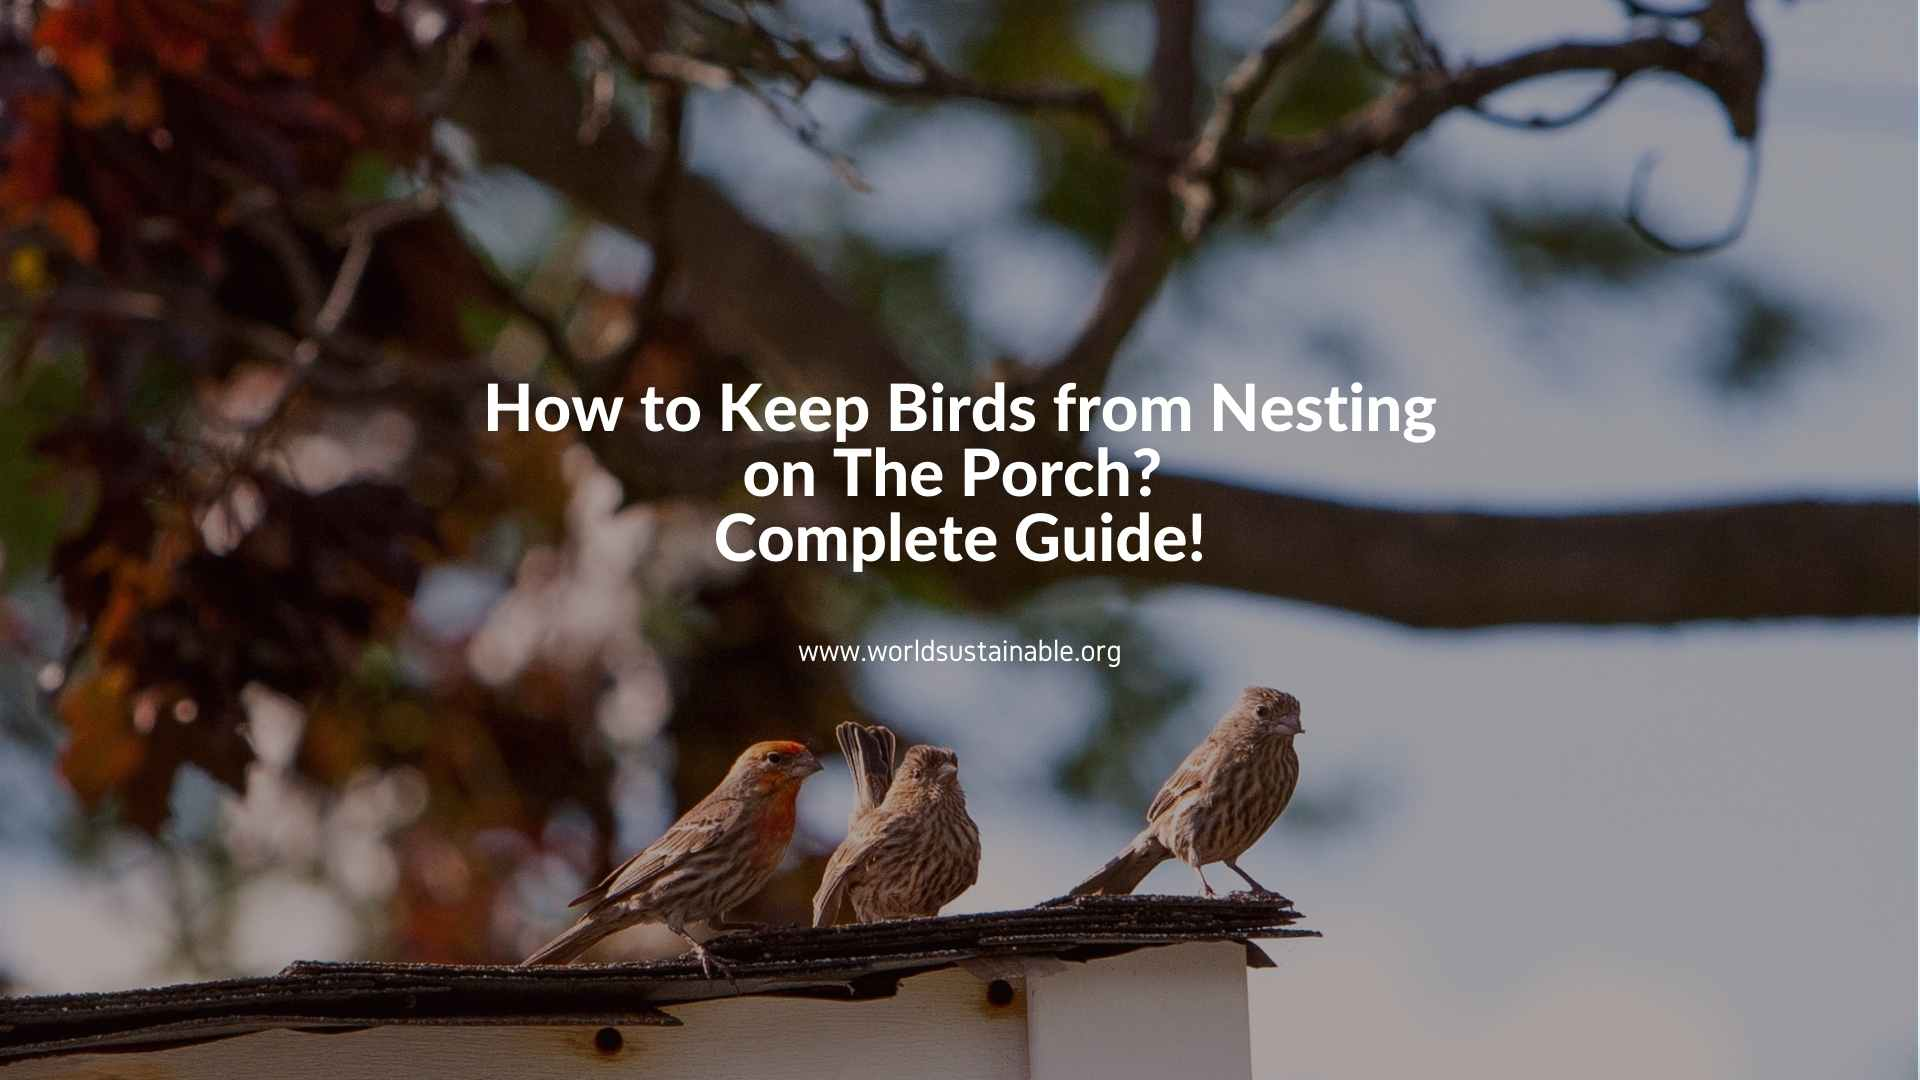 how-to-keep-birds-from-nesting-on-the-porch